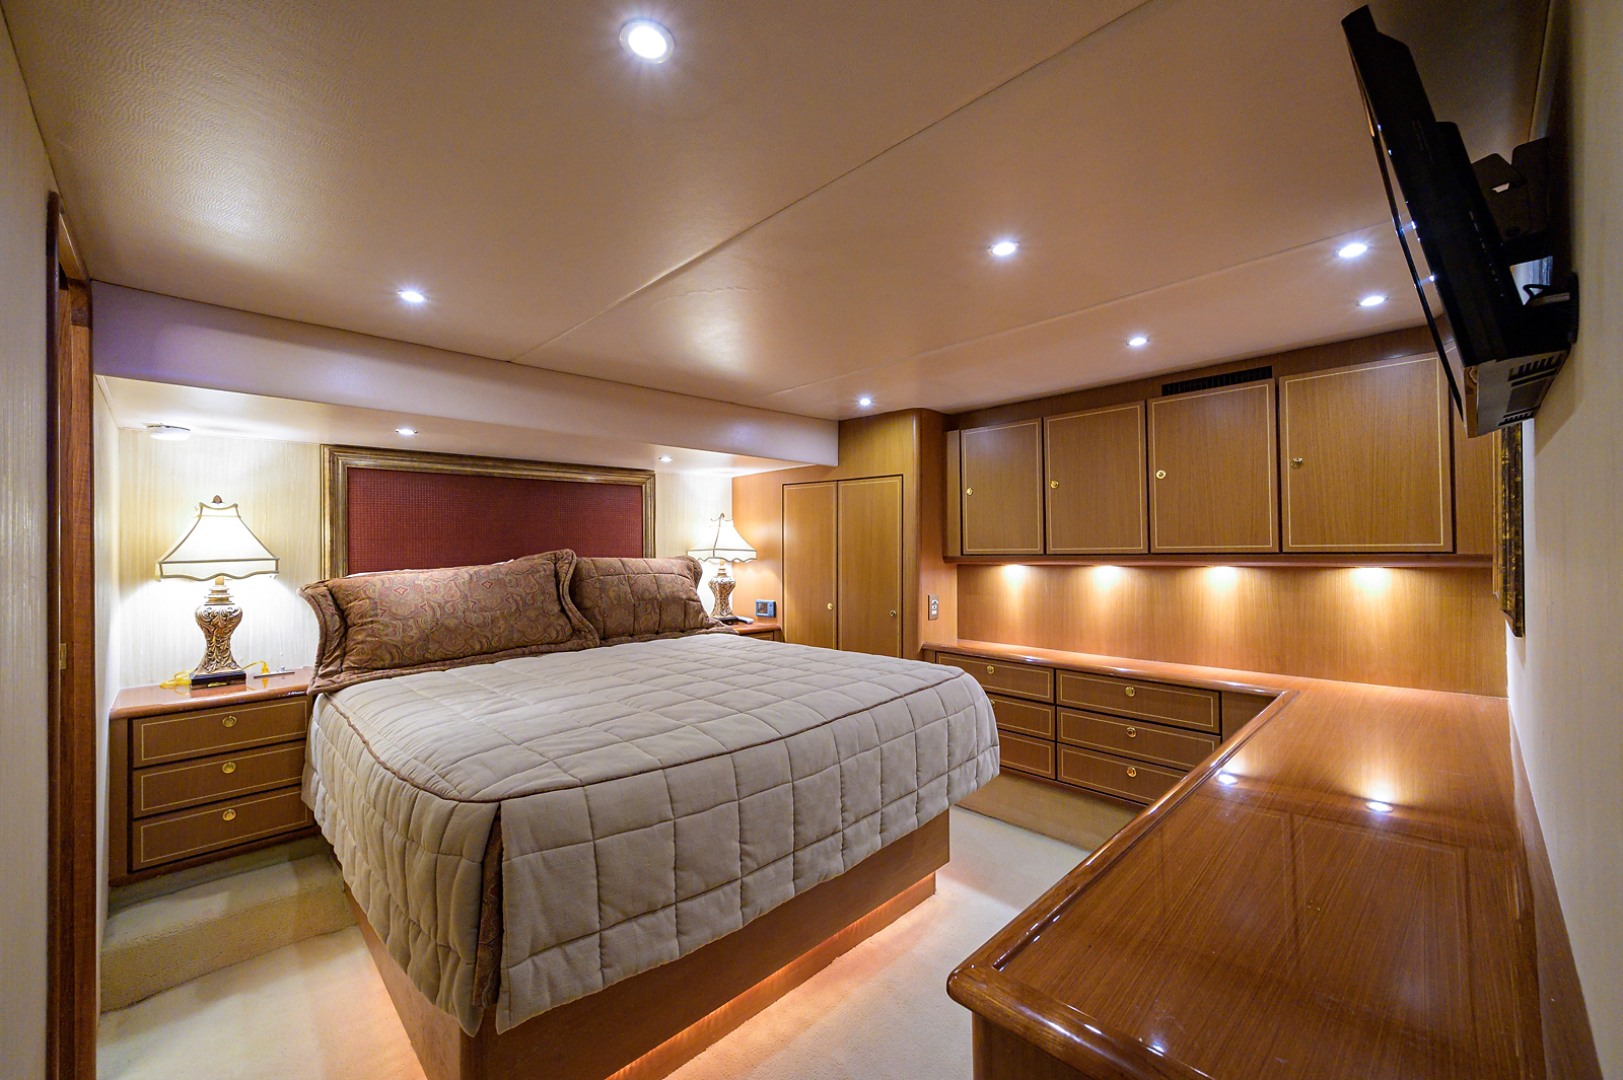 Ocean Yachts-Odyssey 2005-MISS JAN Palm Beach Gardens-Florida-United States-Master Stateroom-1386898 | Thumbnail